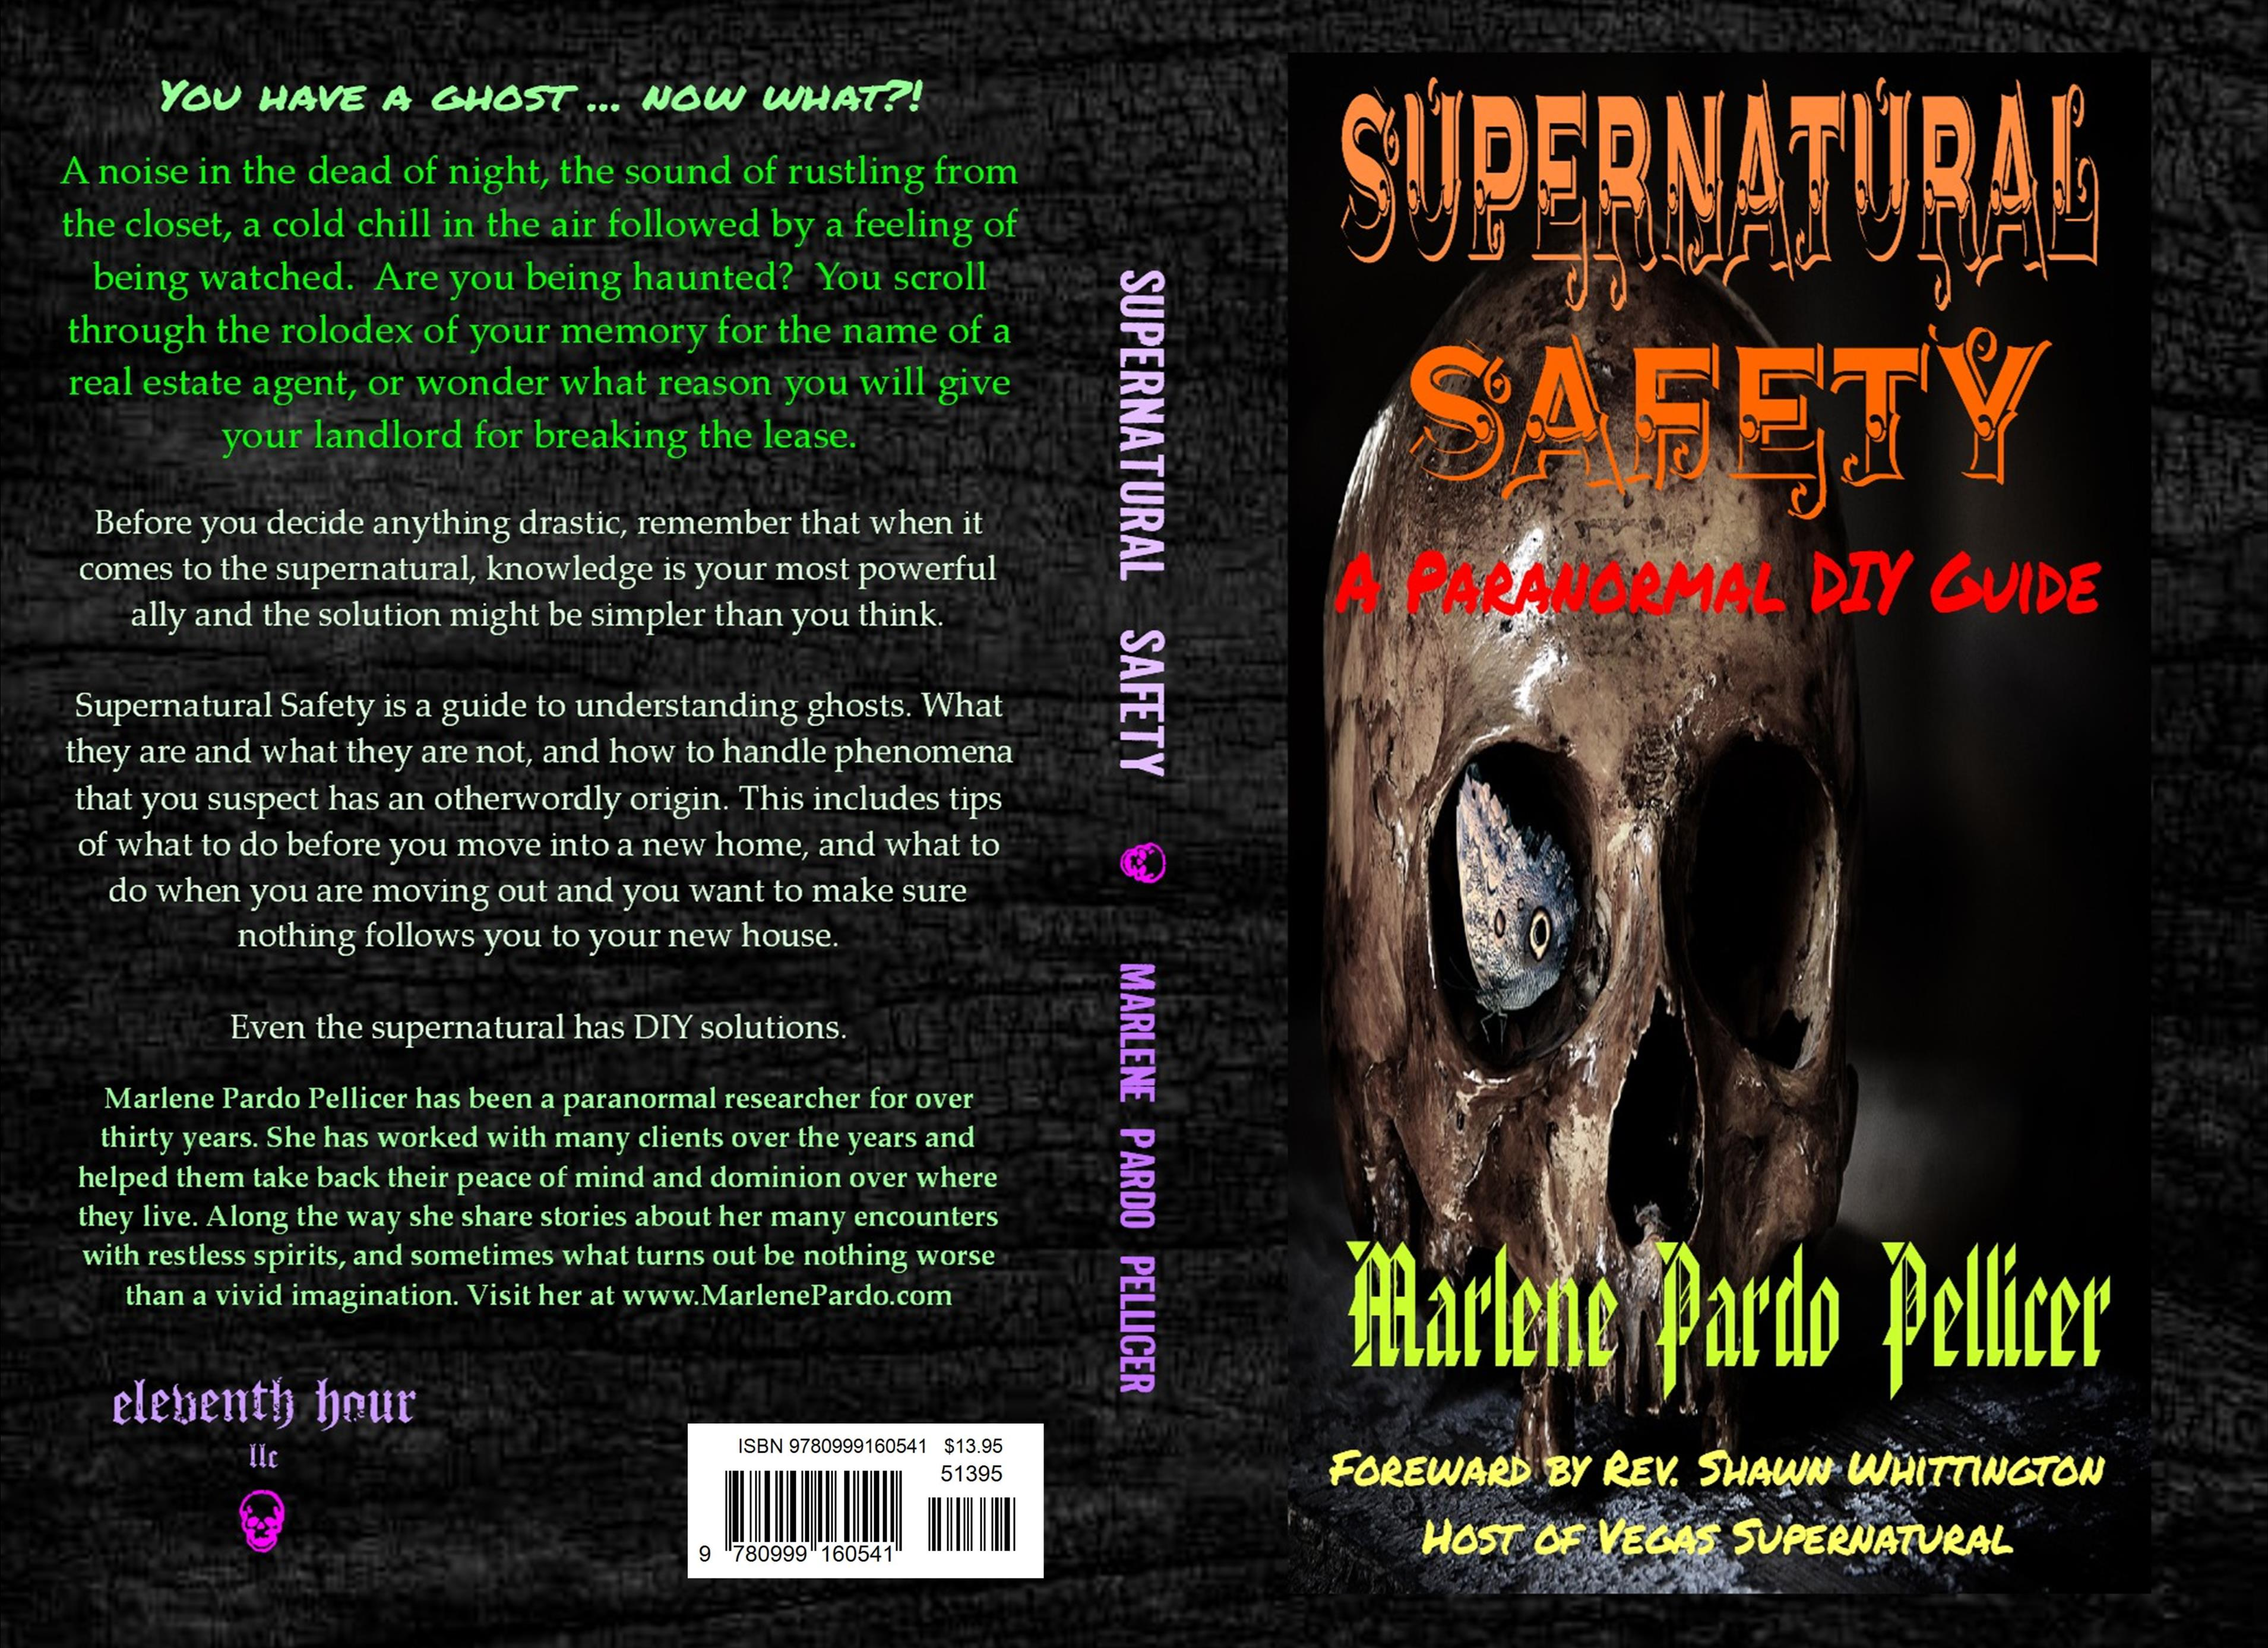 Supernatural Safety: A Paranormal DIY Guide cover image